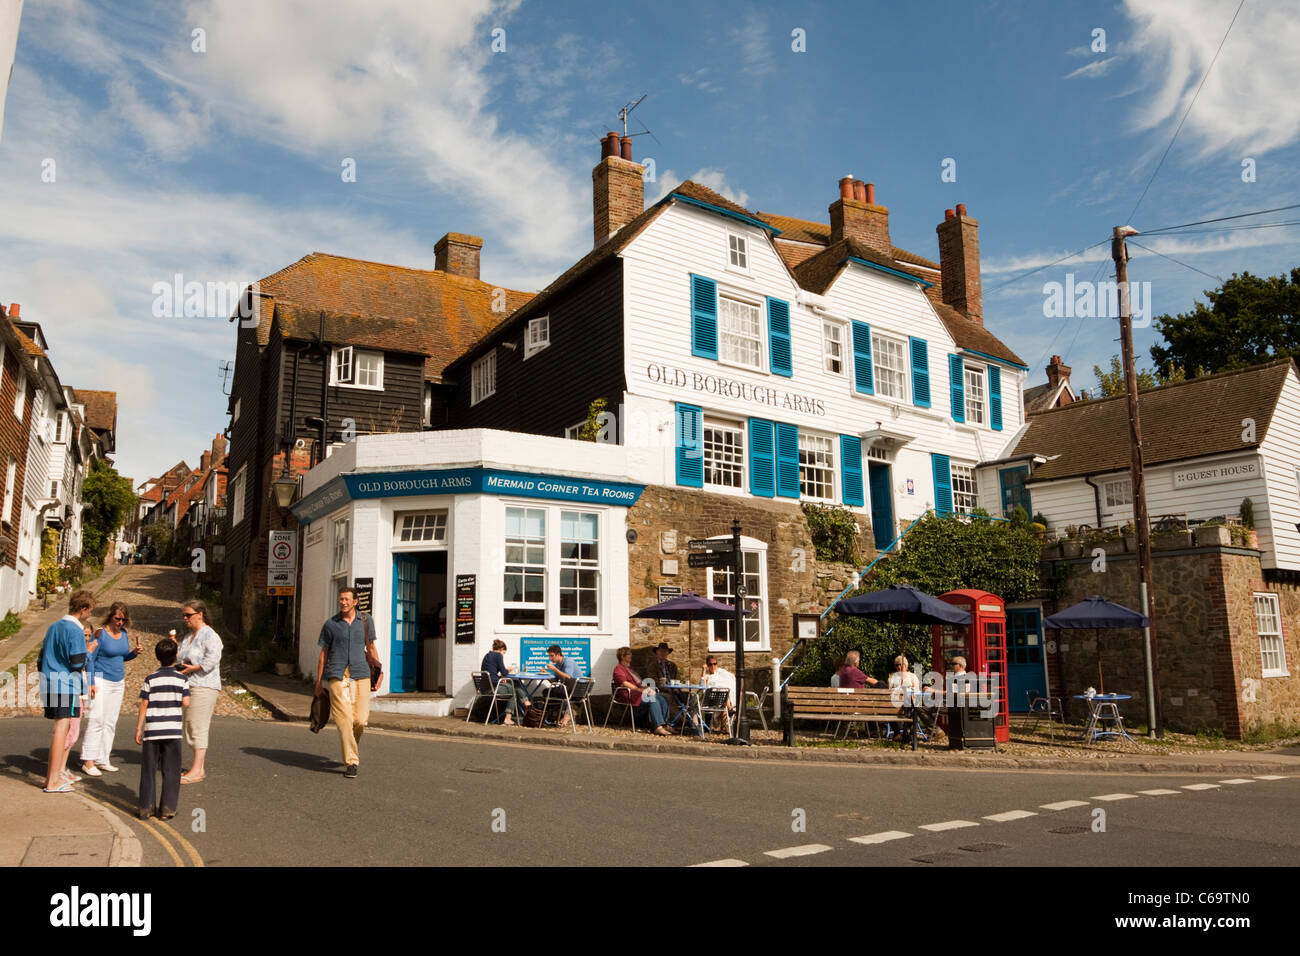 Mermaid Corner Tea Rooms and Old Borough Arms hotel, Rye, East Sussex, England, UK - Stock Image